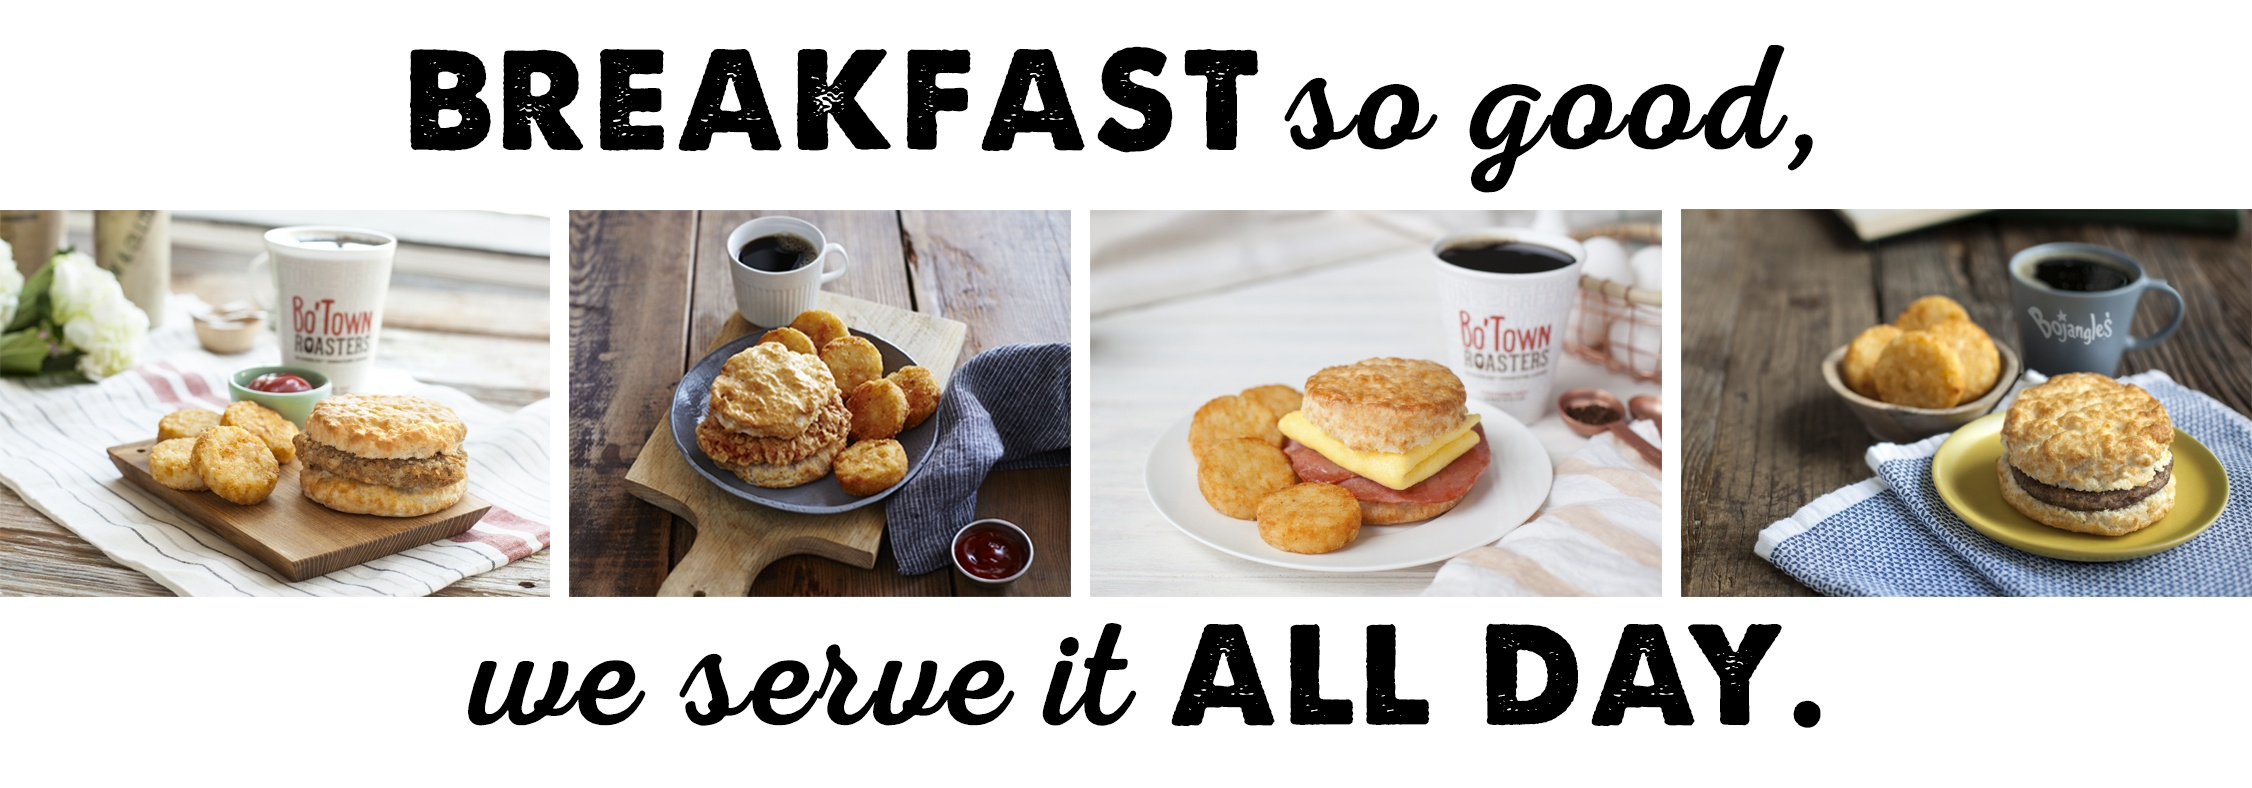 Breakfast All Day - Bojangles' Famous Chicken 'n Biscuits - Free Printable Coupons For Bojangles